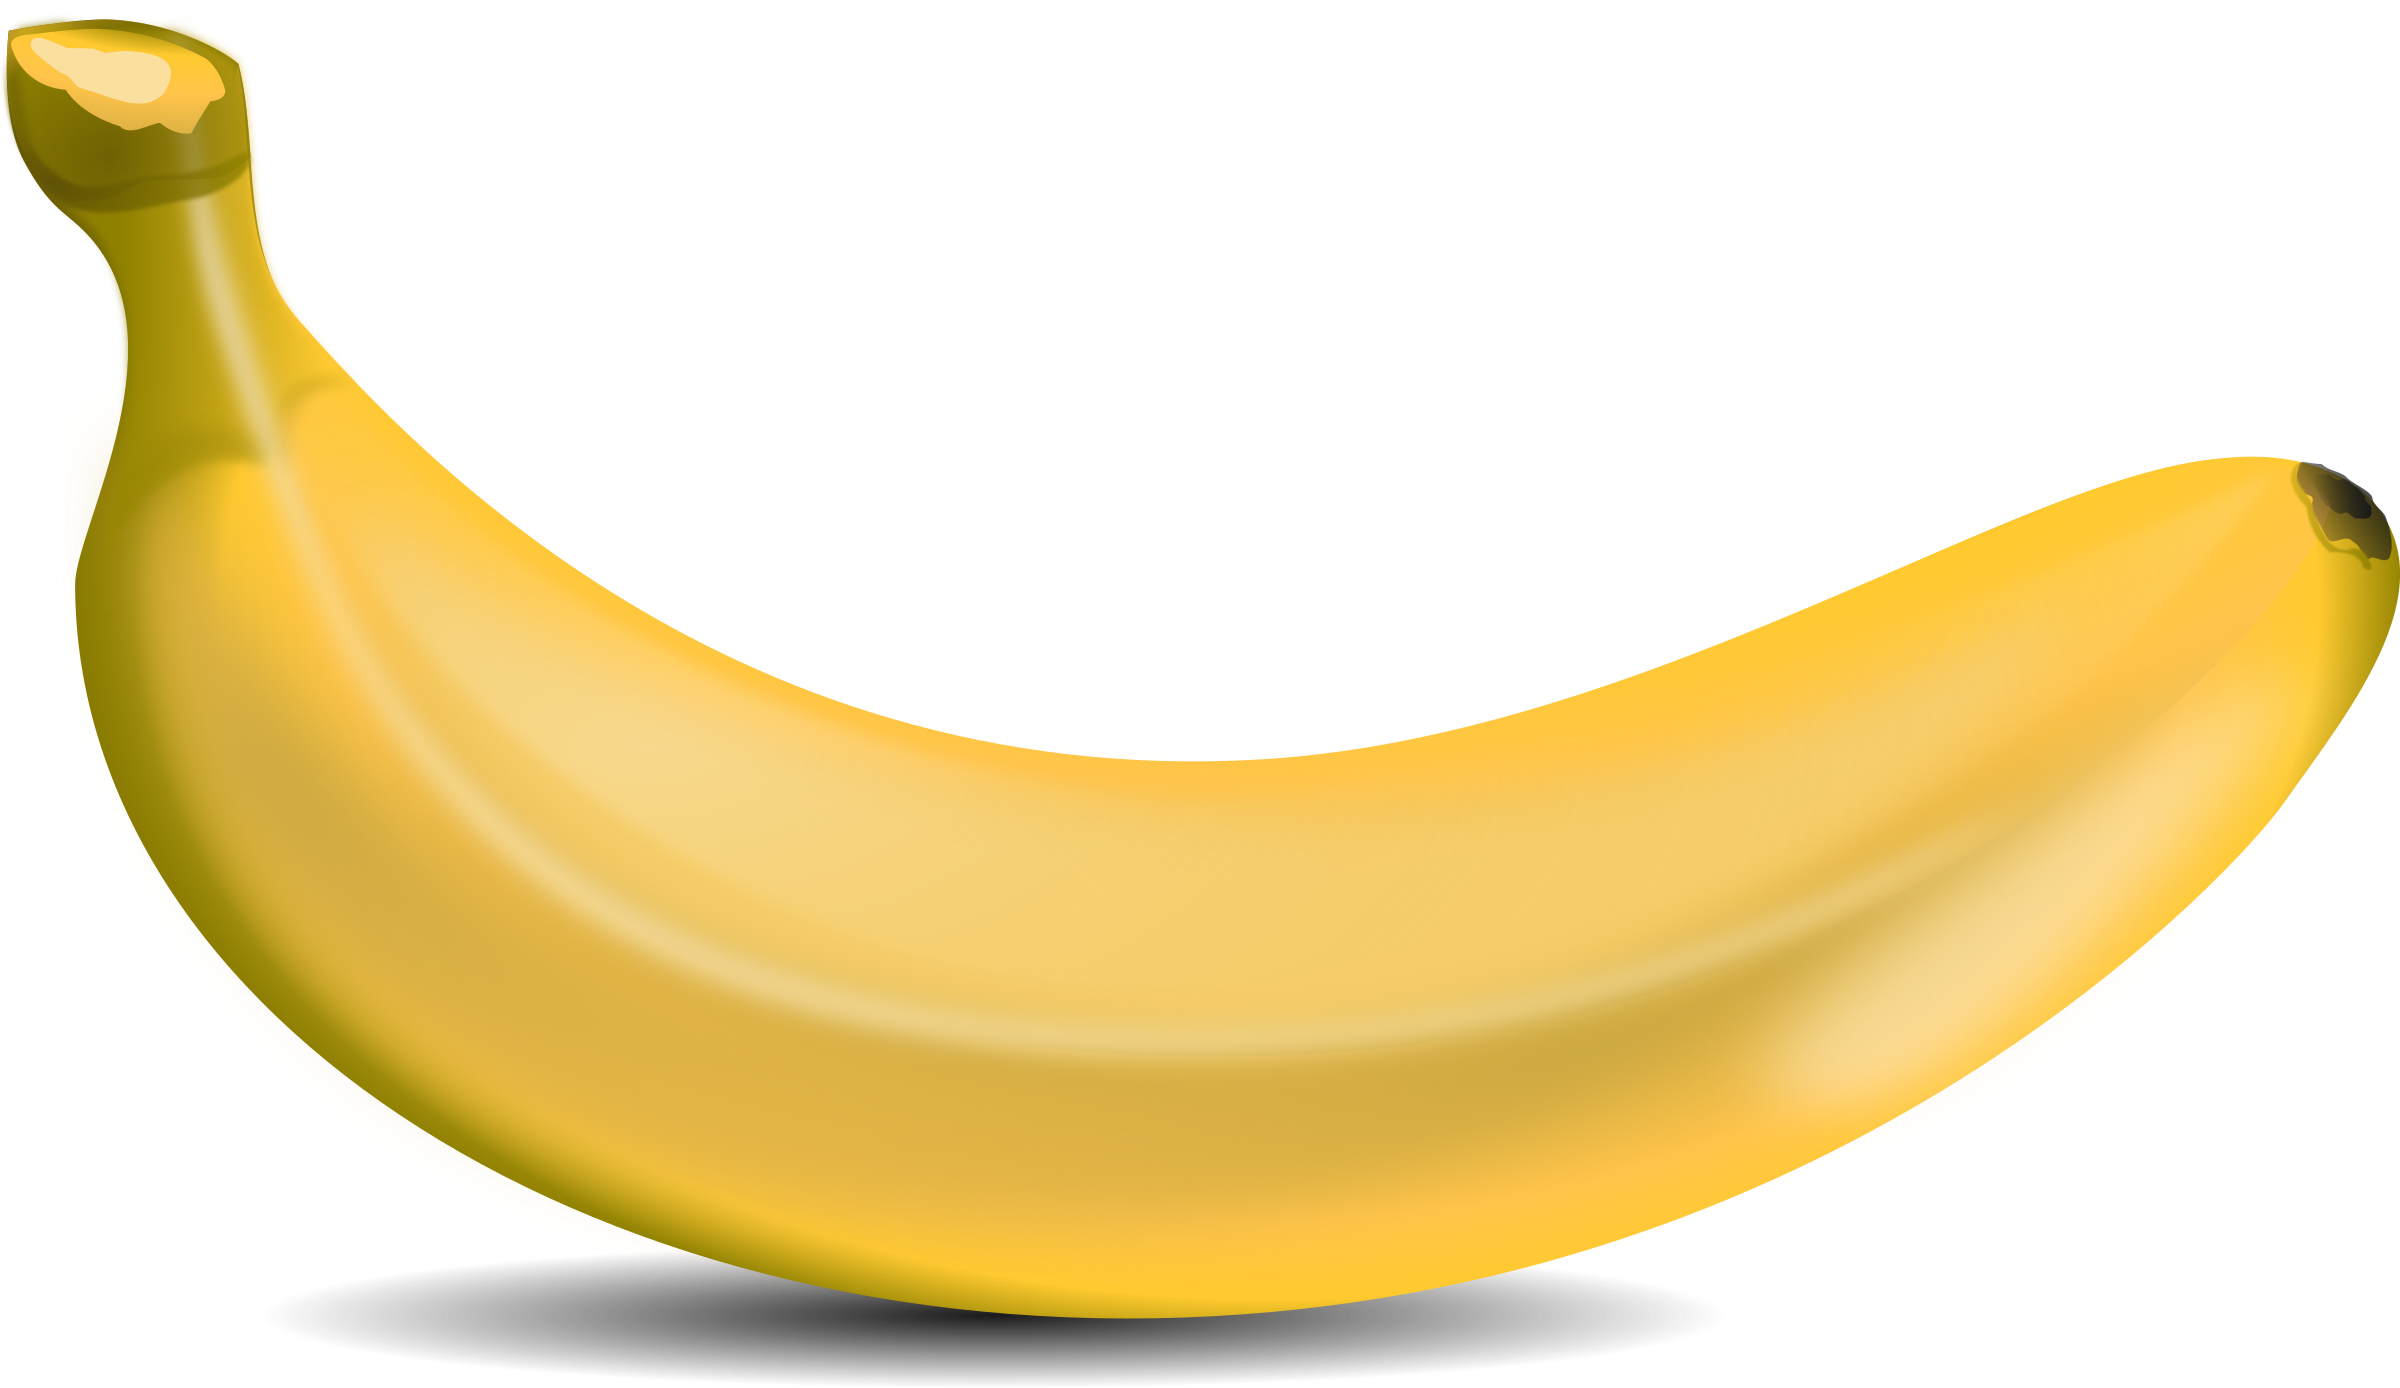 banana clipart transparent background pencil and #12953